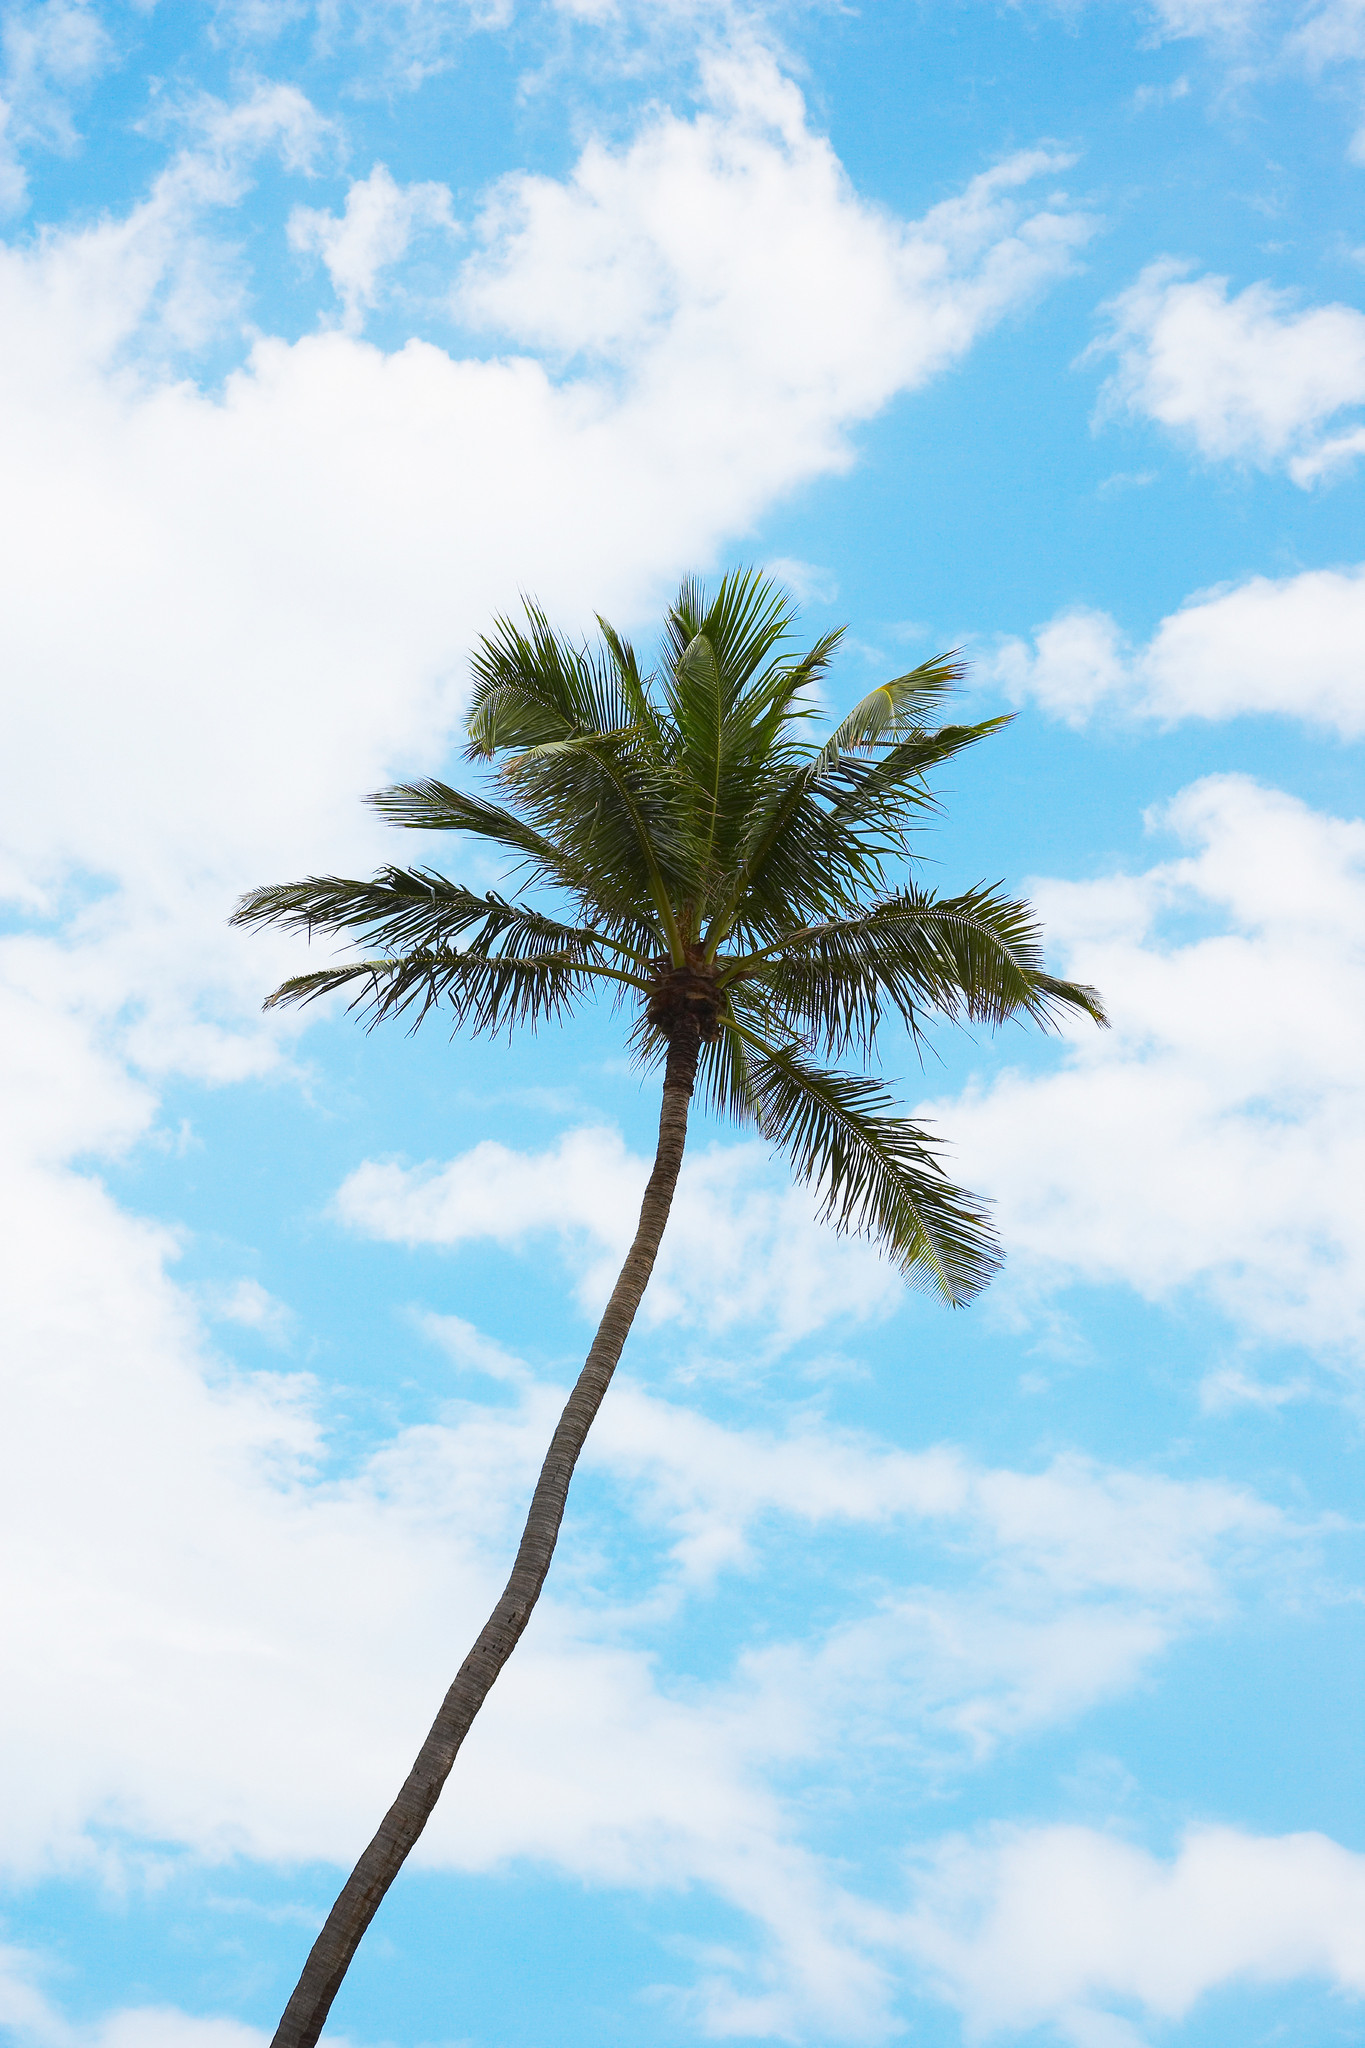 Hd image pictures of palm trees in florida - Craigslist humboldt farm and garden ...